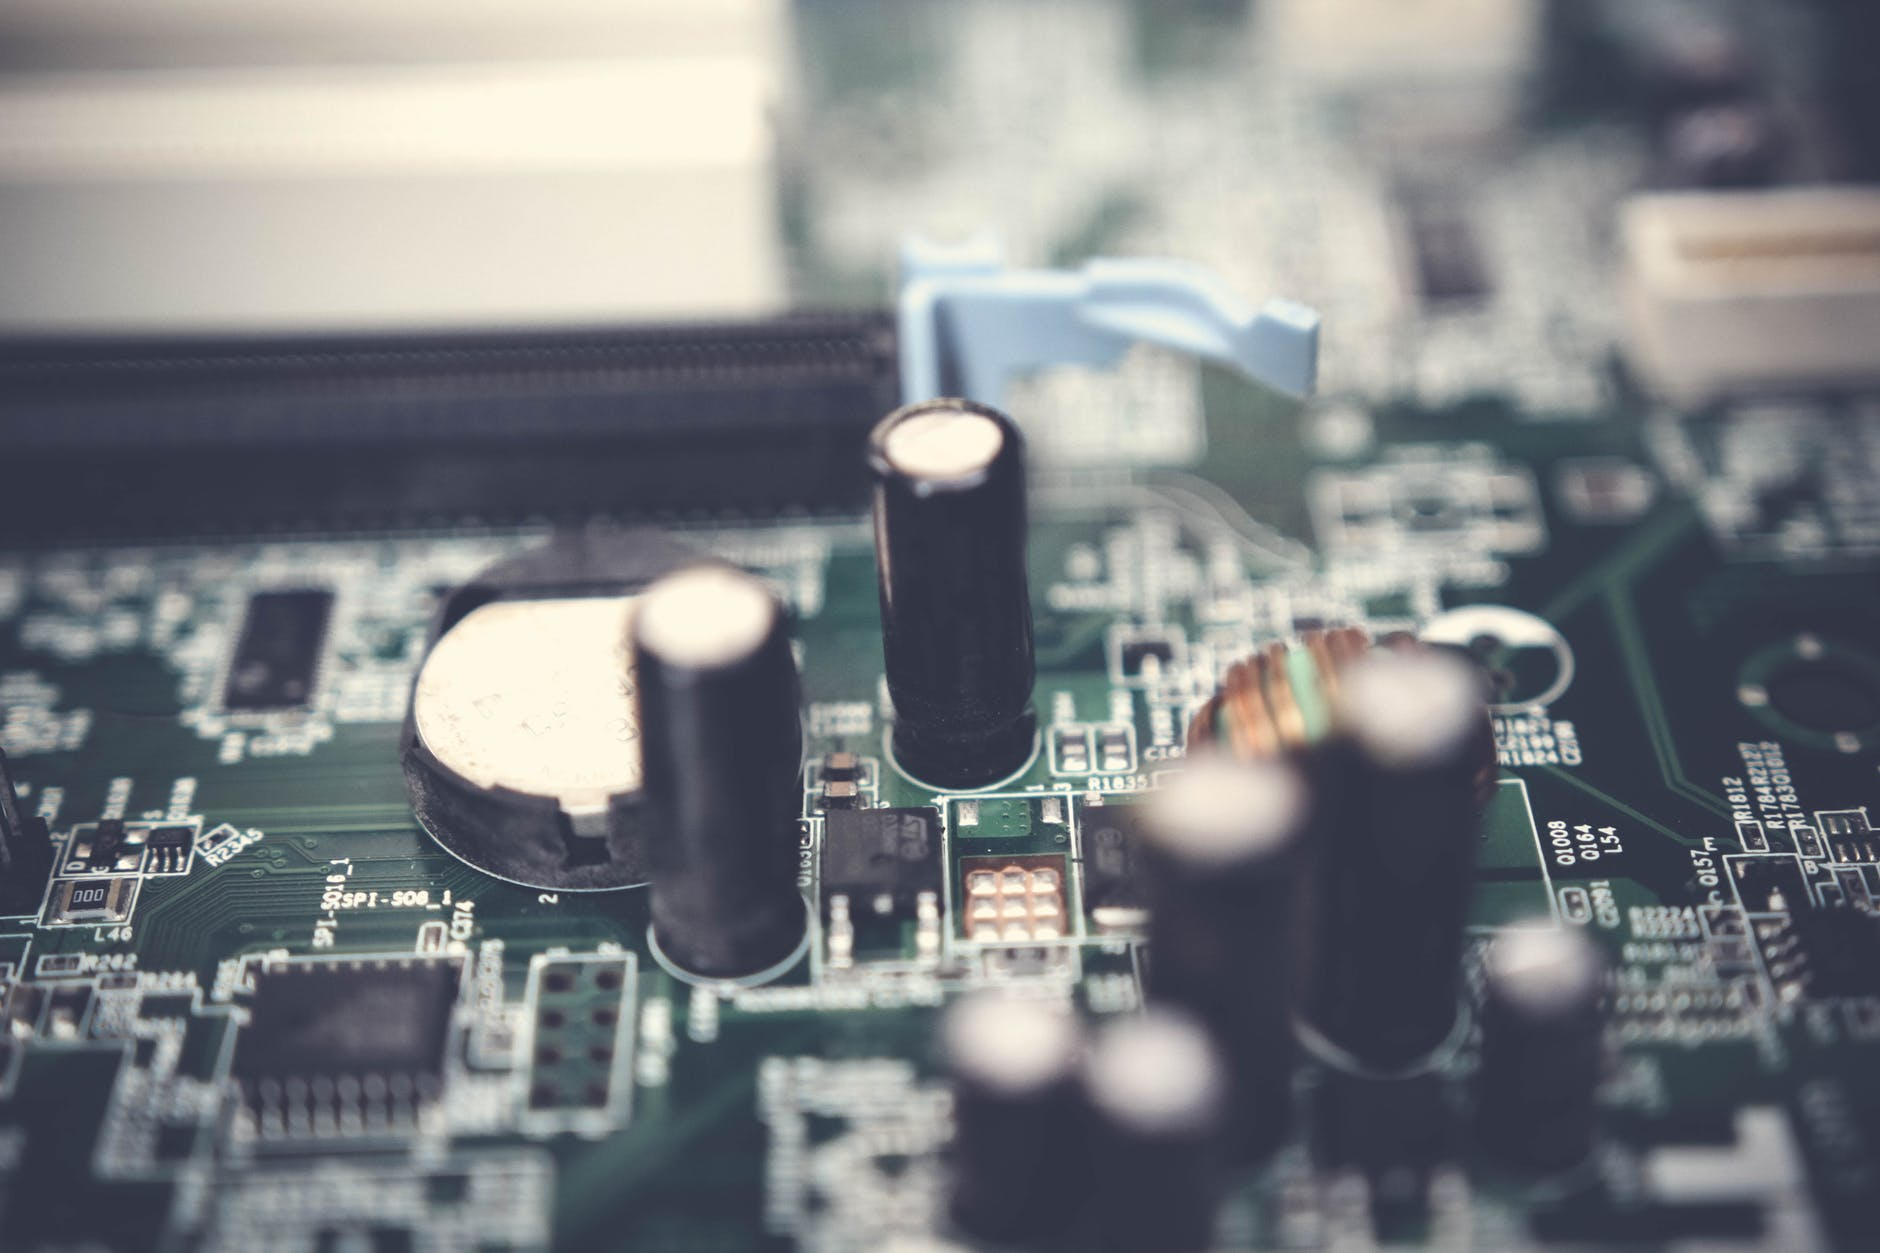 Important Points to Buy Electronic components from China Your Need to Know